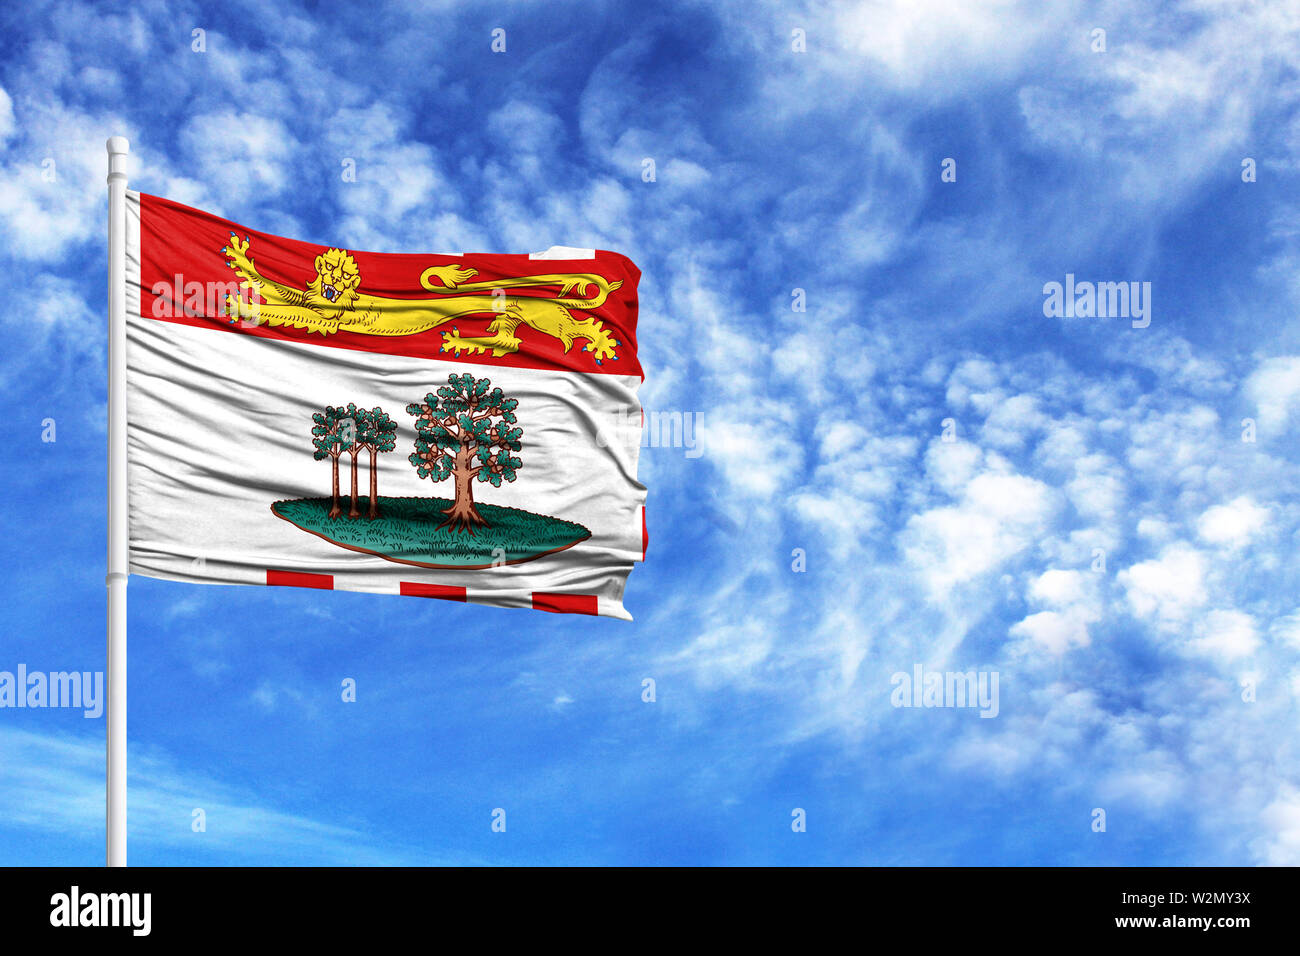 National flag of Prince Edward Island on a flagpole in front of blue sky - Stock Image